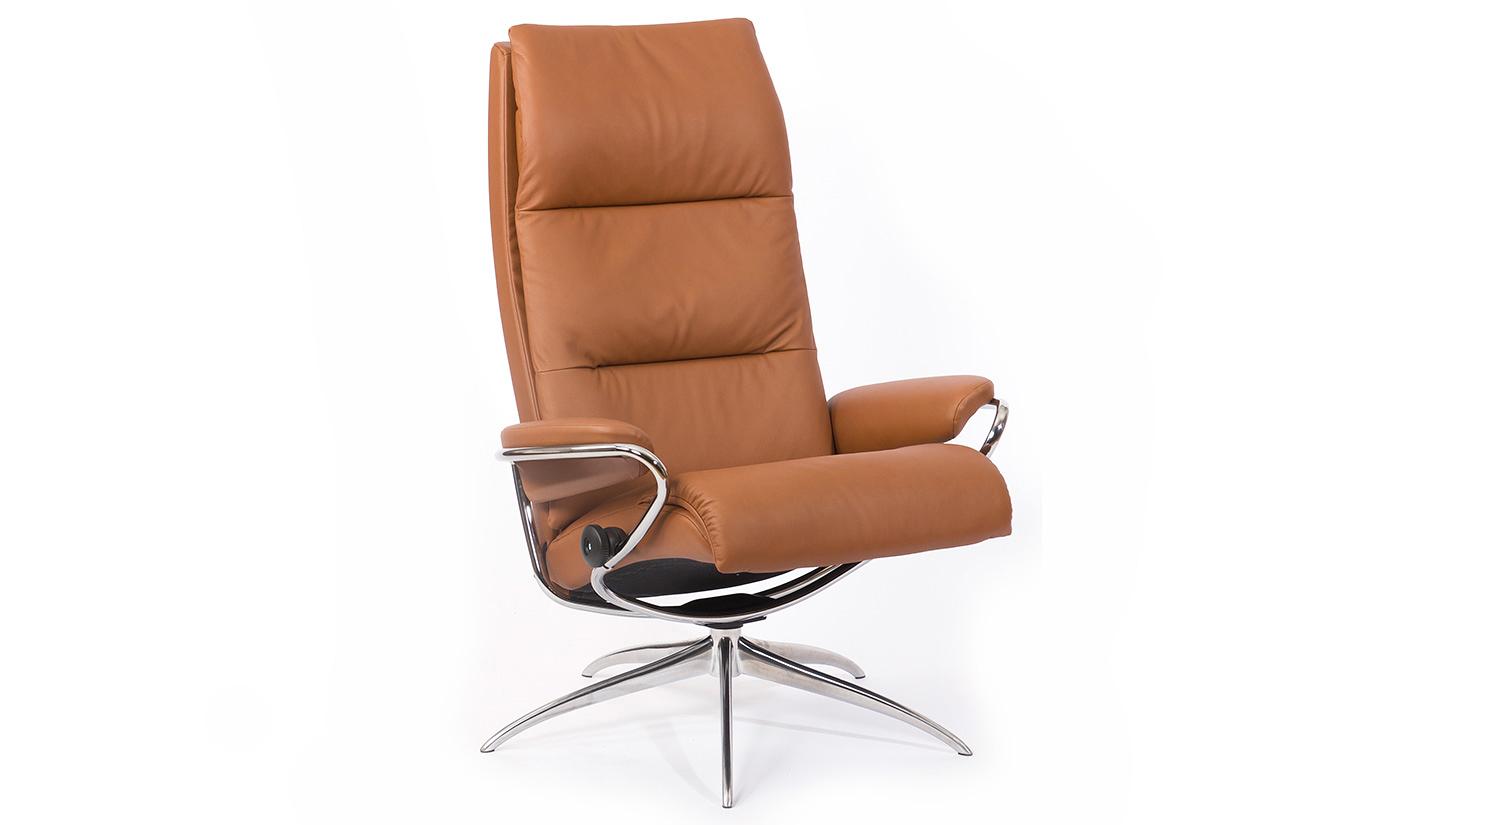 Tokyo Stressless Highback Chair and Ottoman